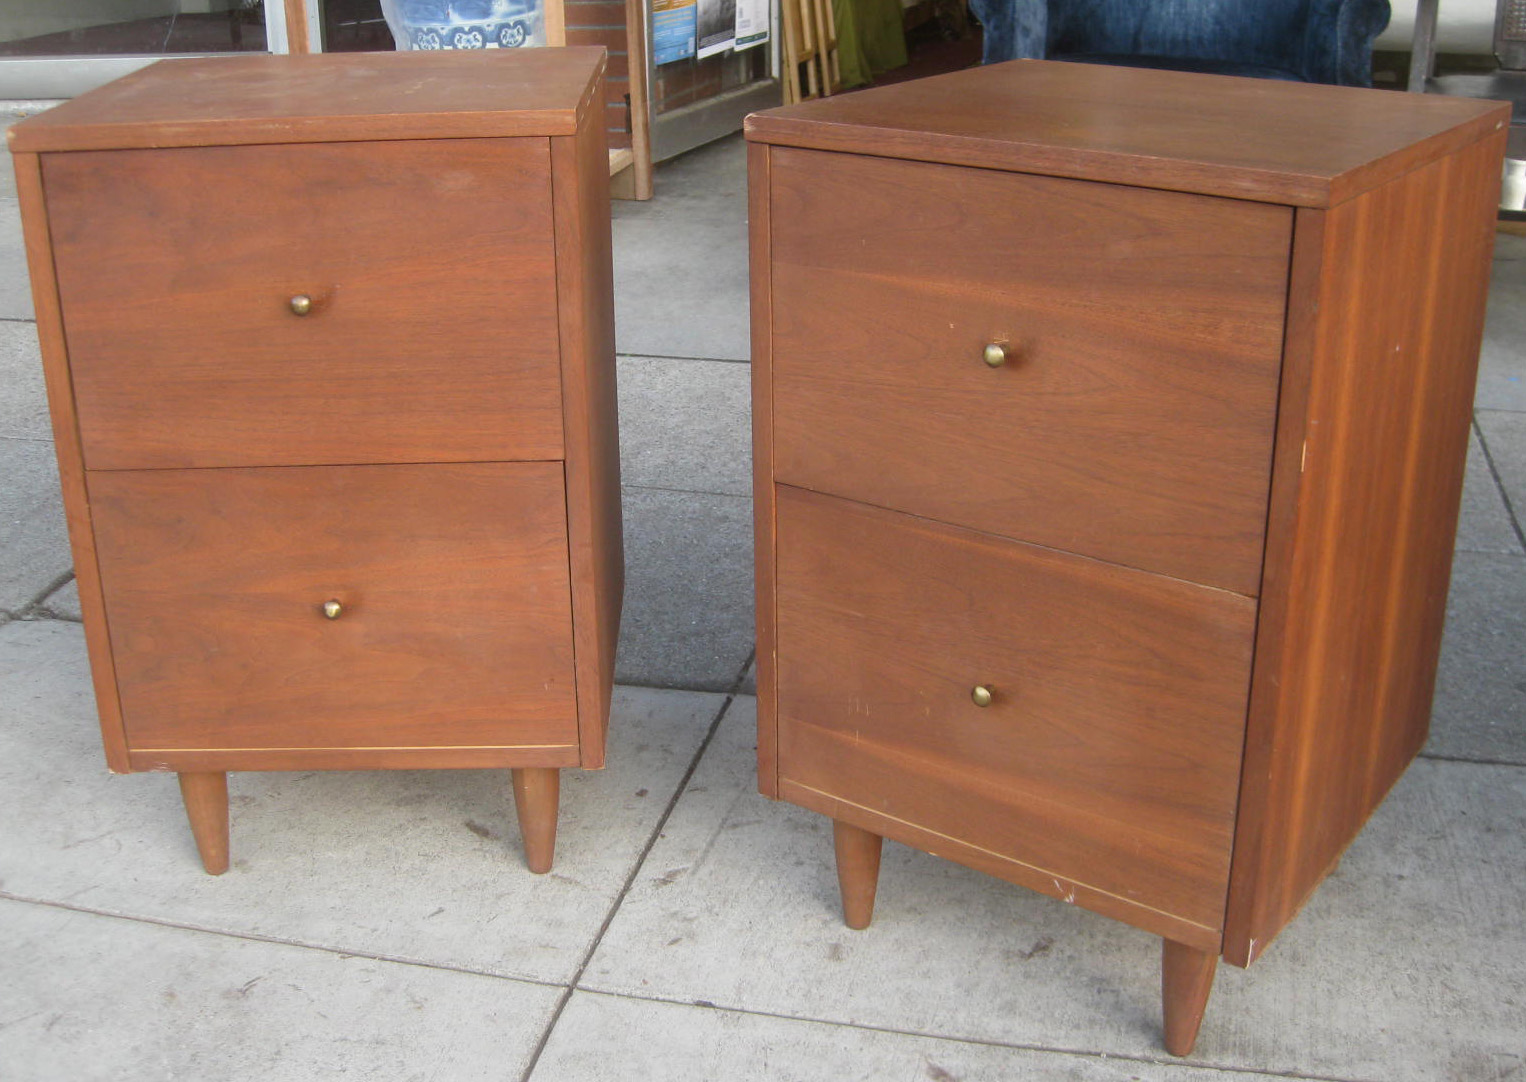 SOLD - Pair of Old Wooden File Cabinets - $25 each - UHURU FURNITURE & COLLECTIBLES: SOLD - Pair Of Old Wooden File